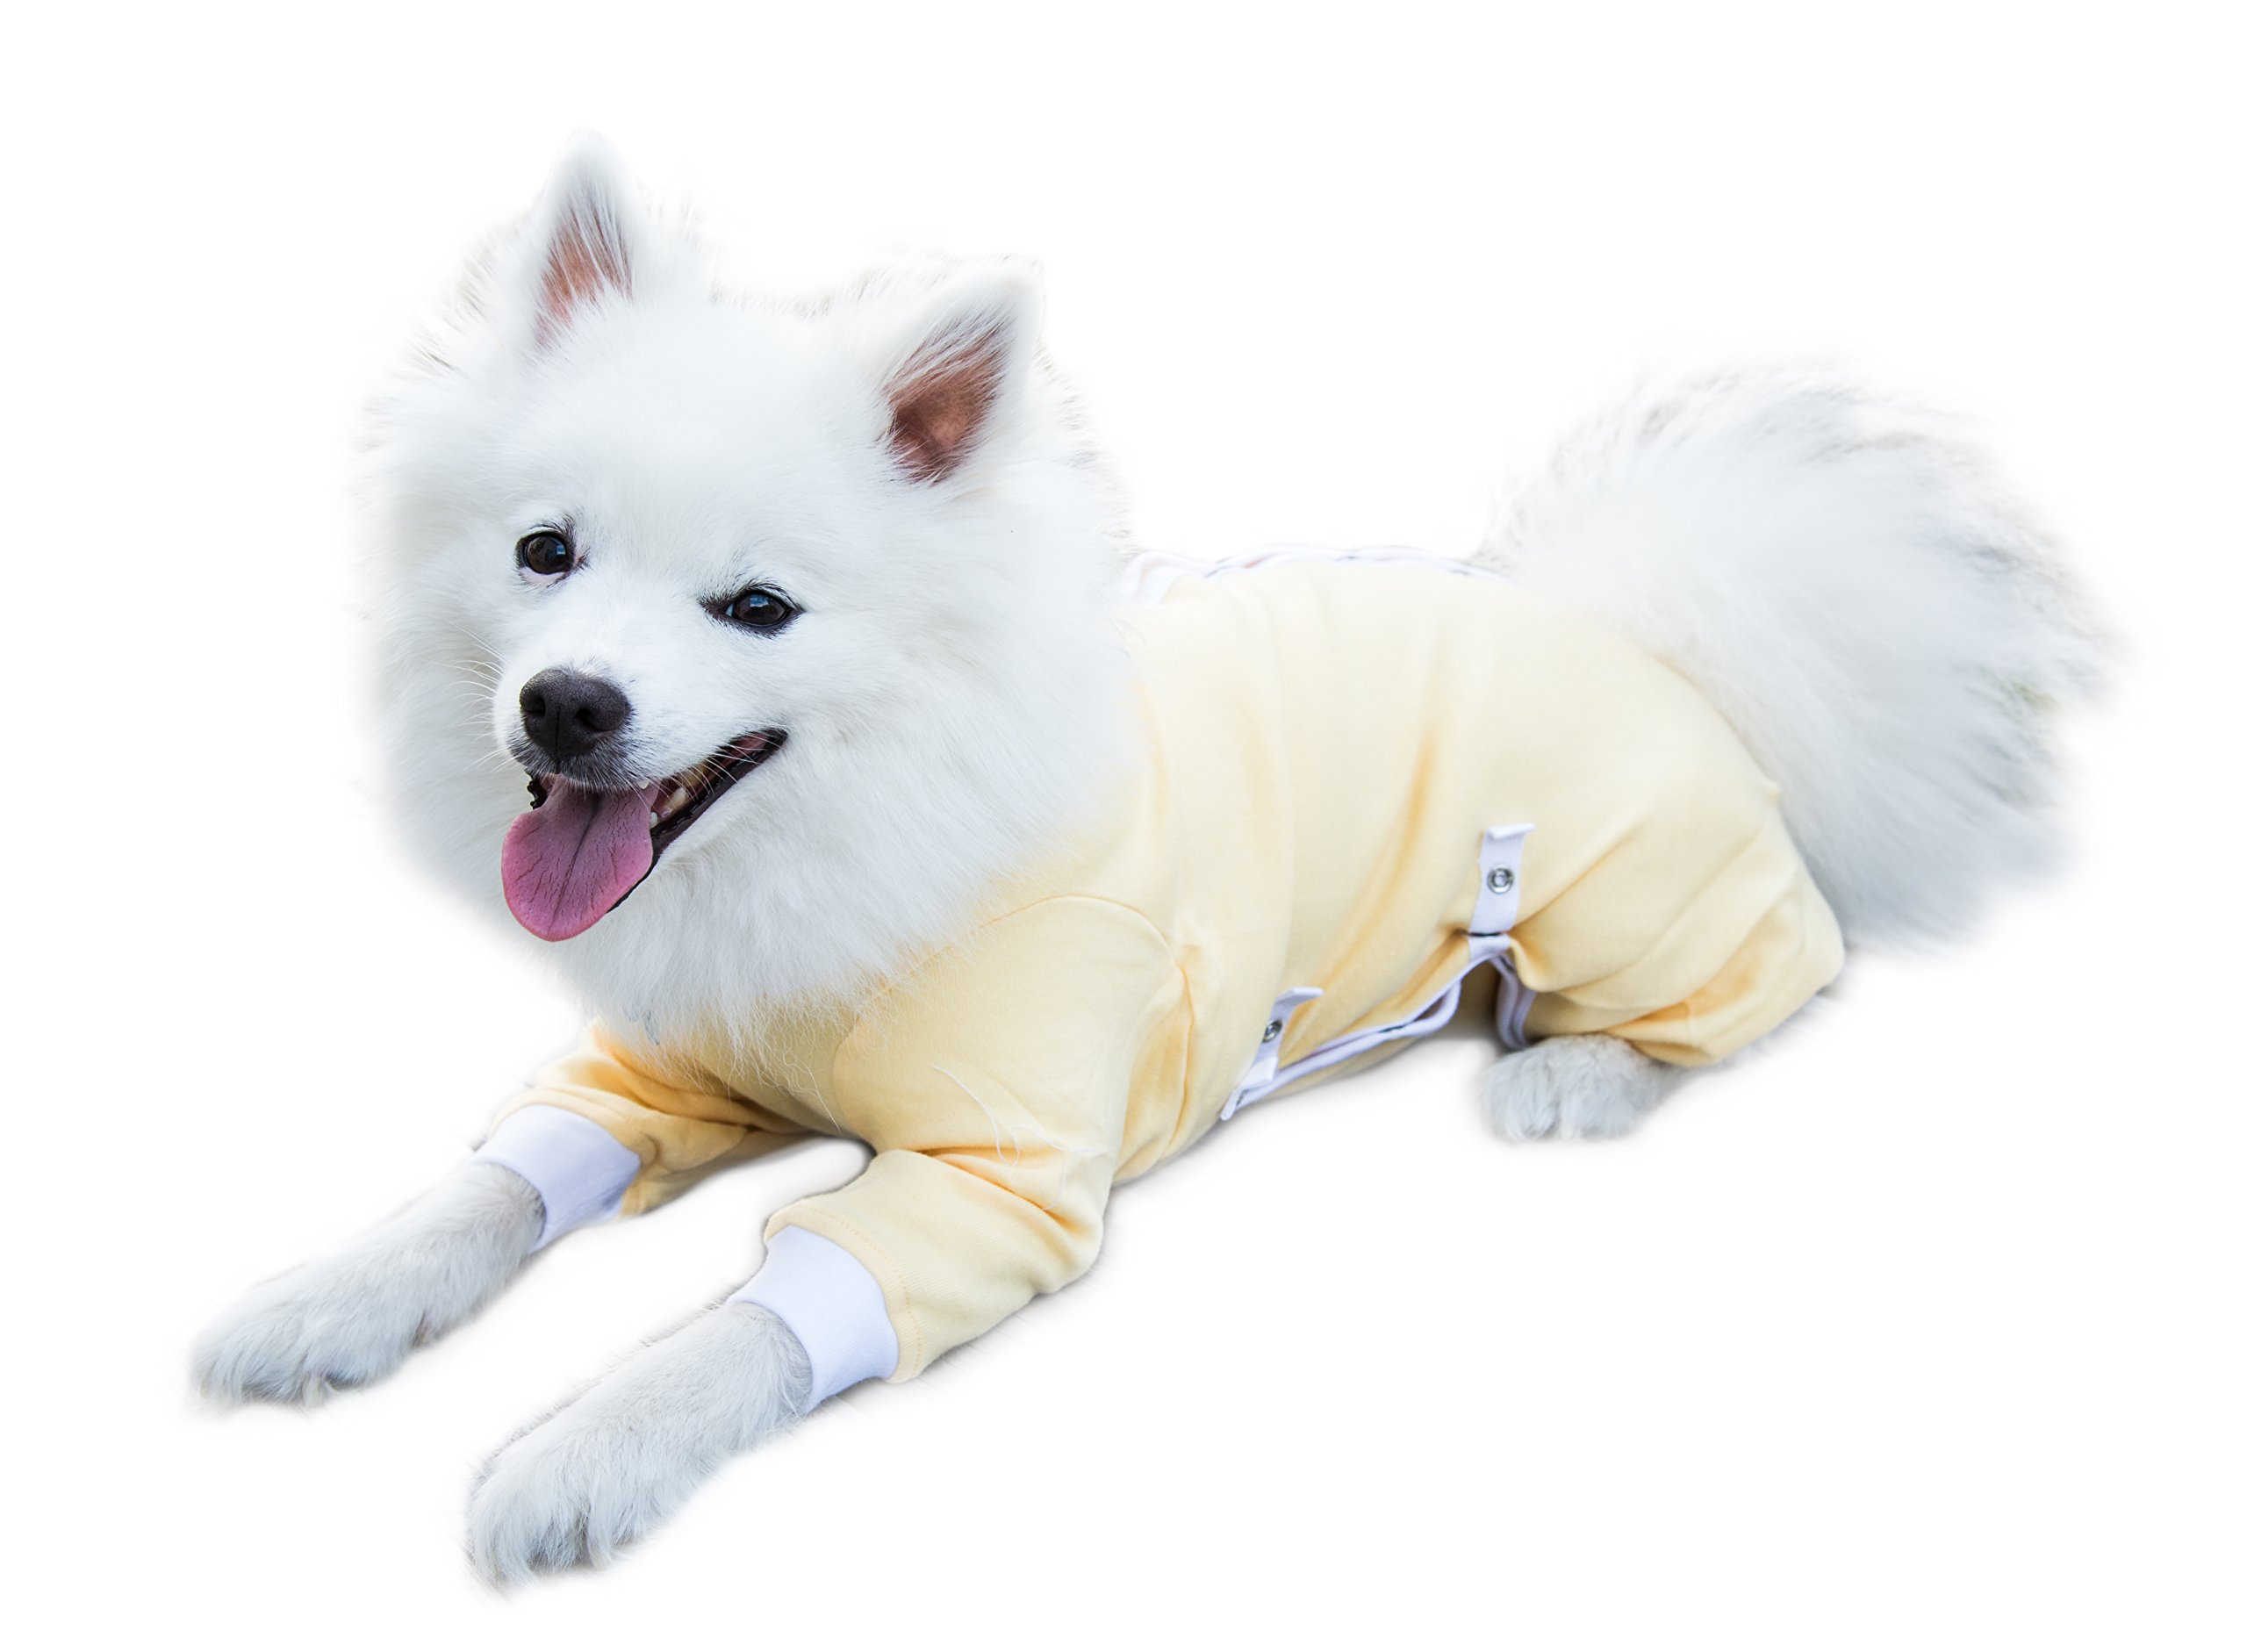 Cover Me by Tui Adjustable Fit Step-into with Short Sleeve for Pets, Large, Yellow by Cover Me by Tui  Adjustable Fit